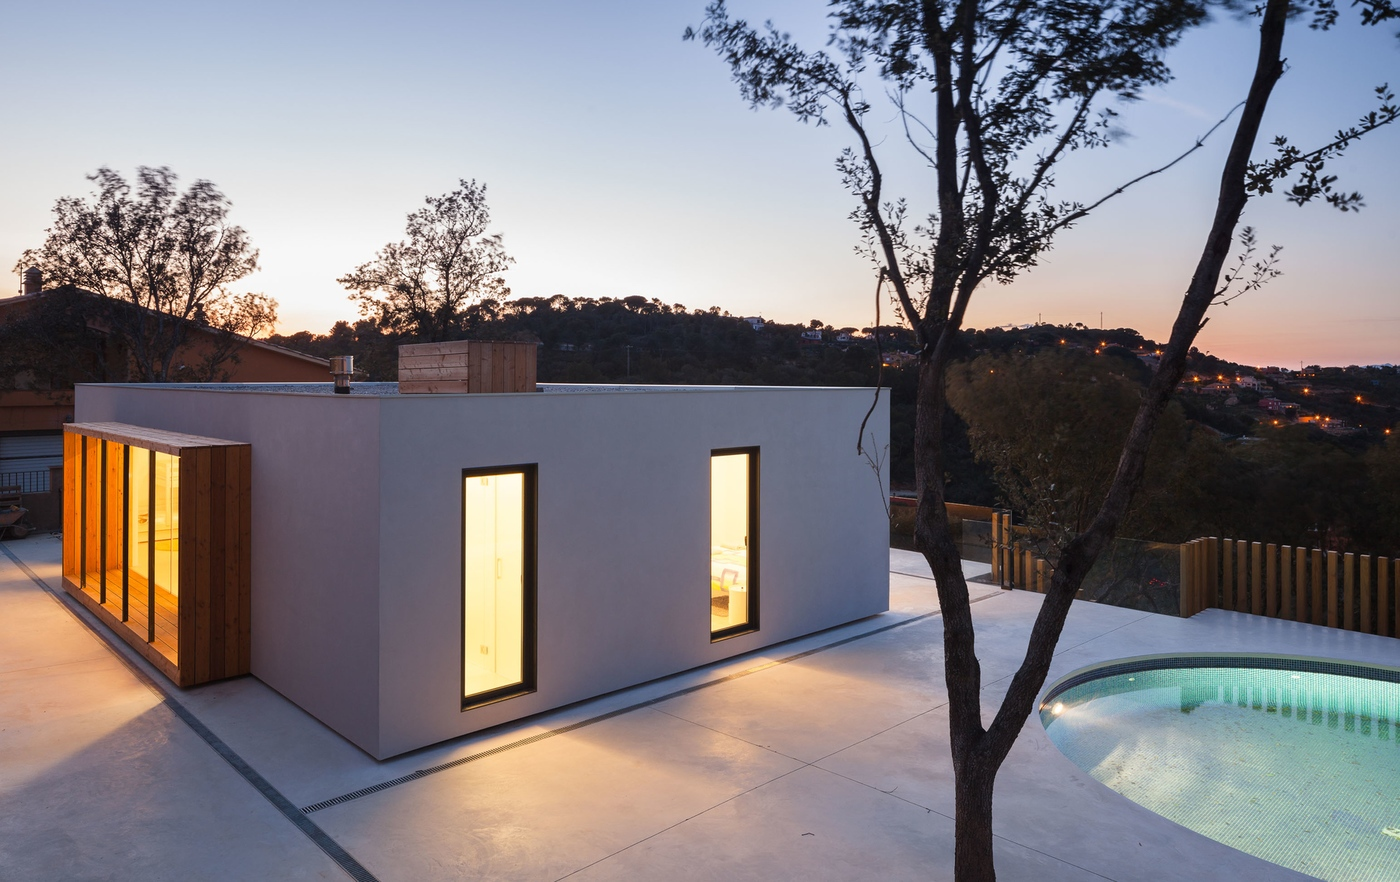 Genial Houses - model H-100 (Begur)